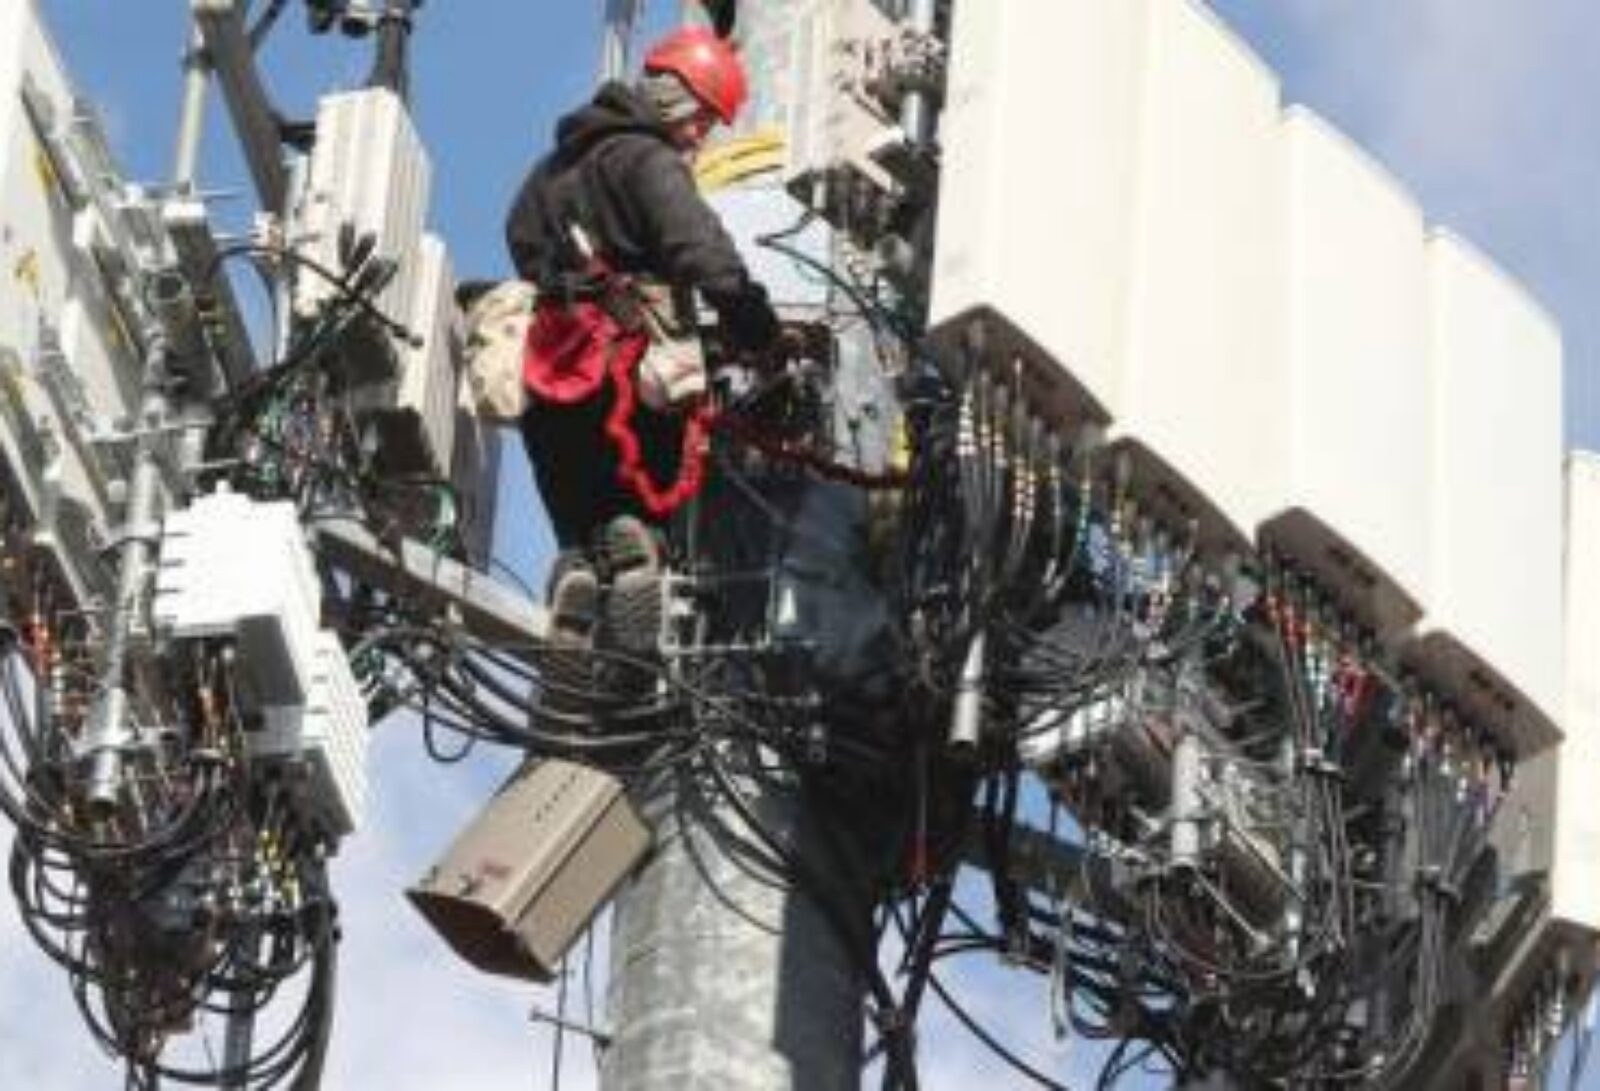 People are burning down 5G towers after conspiracy theory suggests they are causing coronavirus